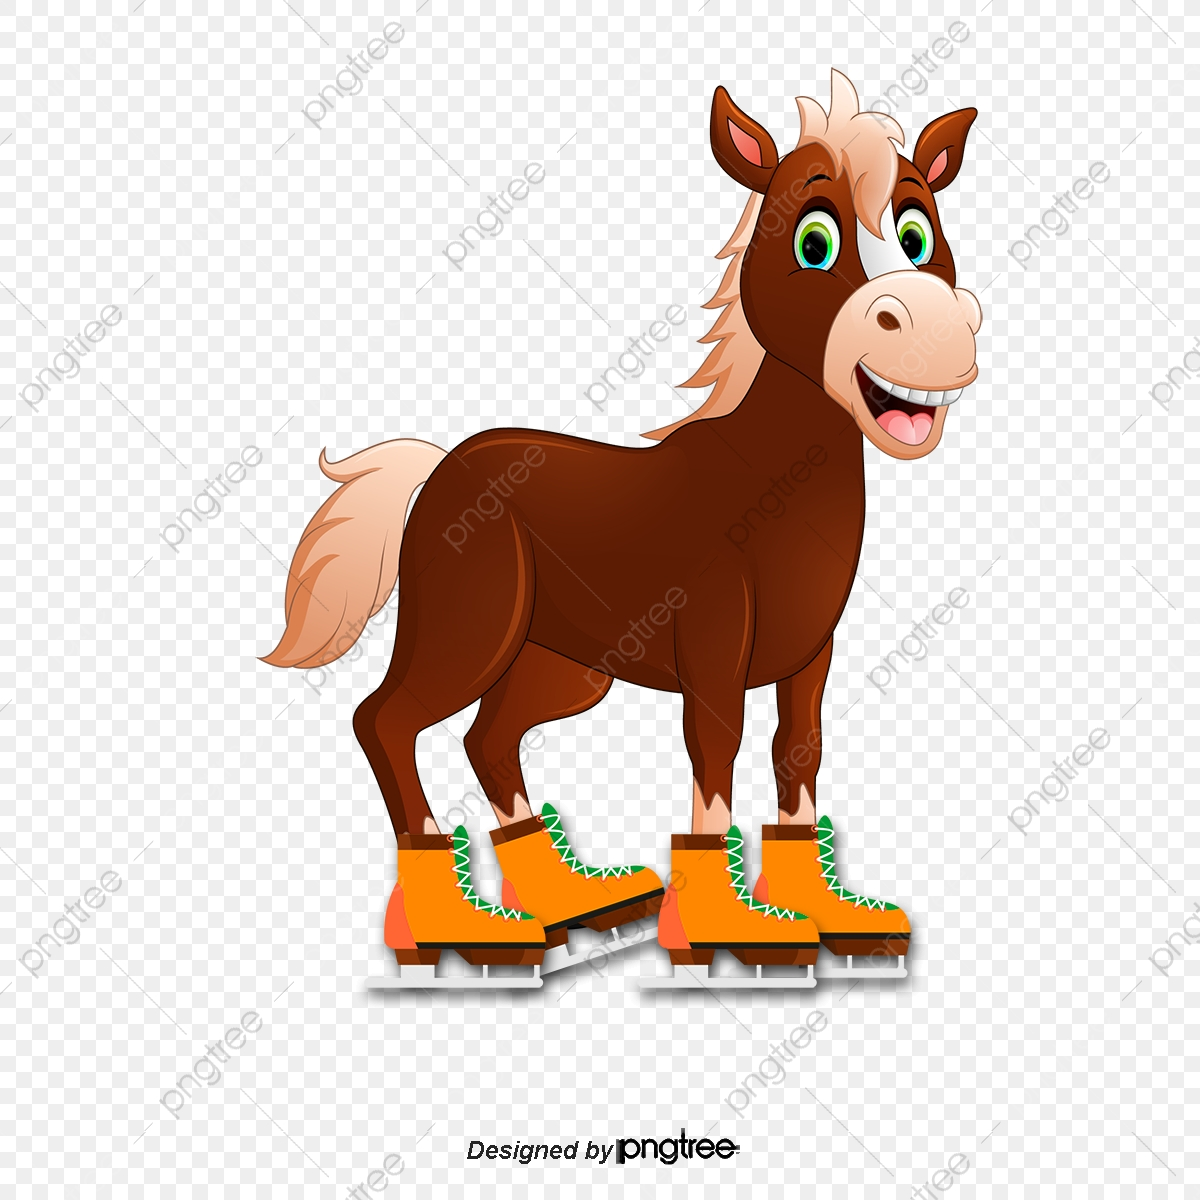 Cute 3d Cartoon Horse Pictures, Cartoon Clipart, Horse Clipart, Cute ... royalty free library